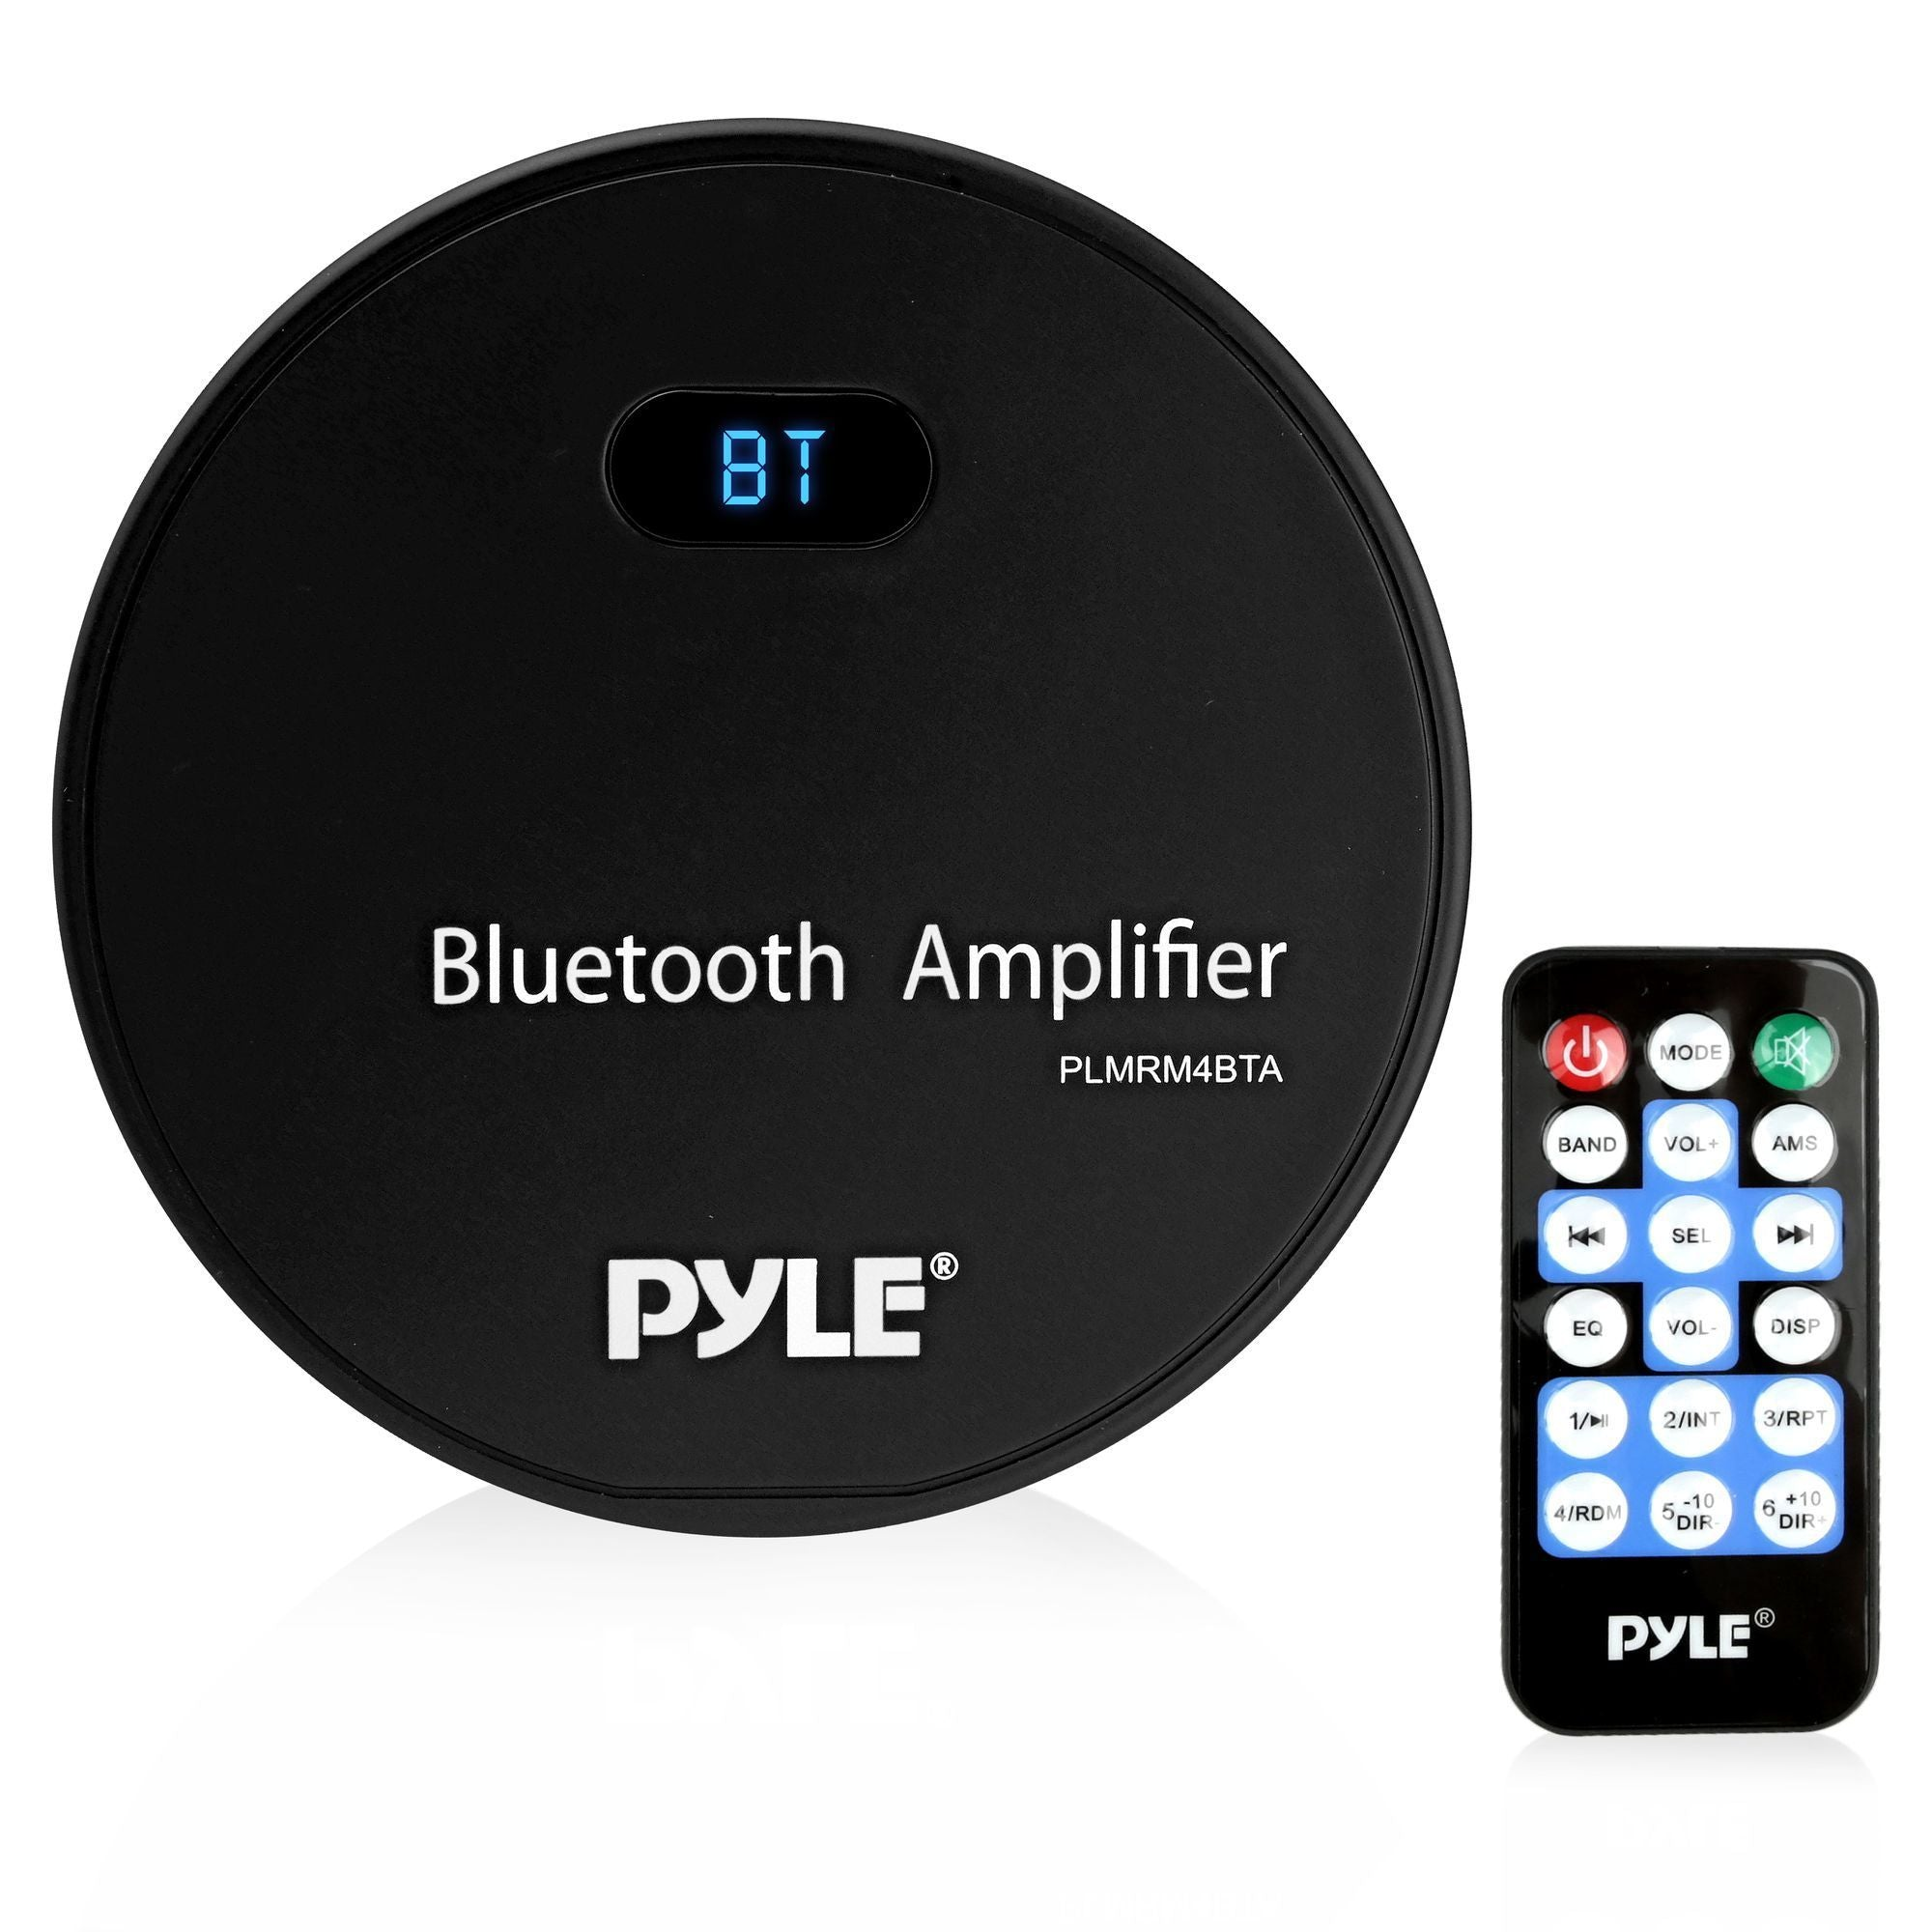 Pyle Wireless Bluetooth Vehicle Amplifier Receiver, Water Resistant, (PLMRM4BTA)